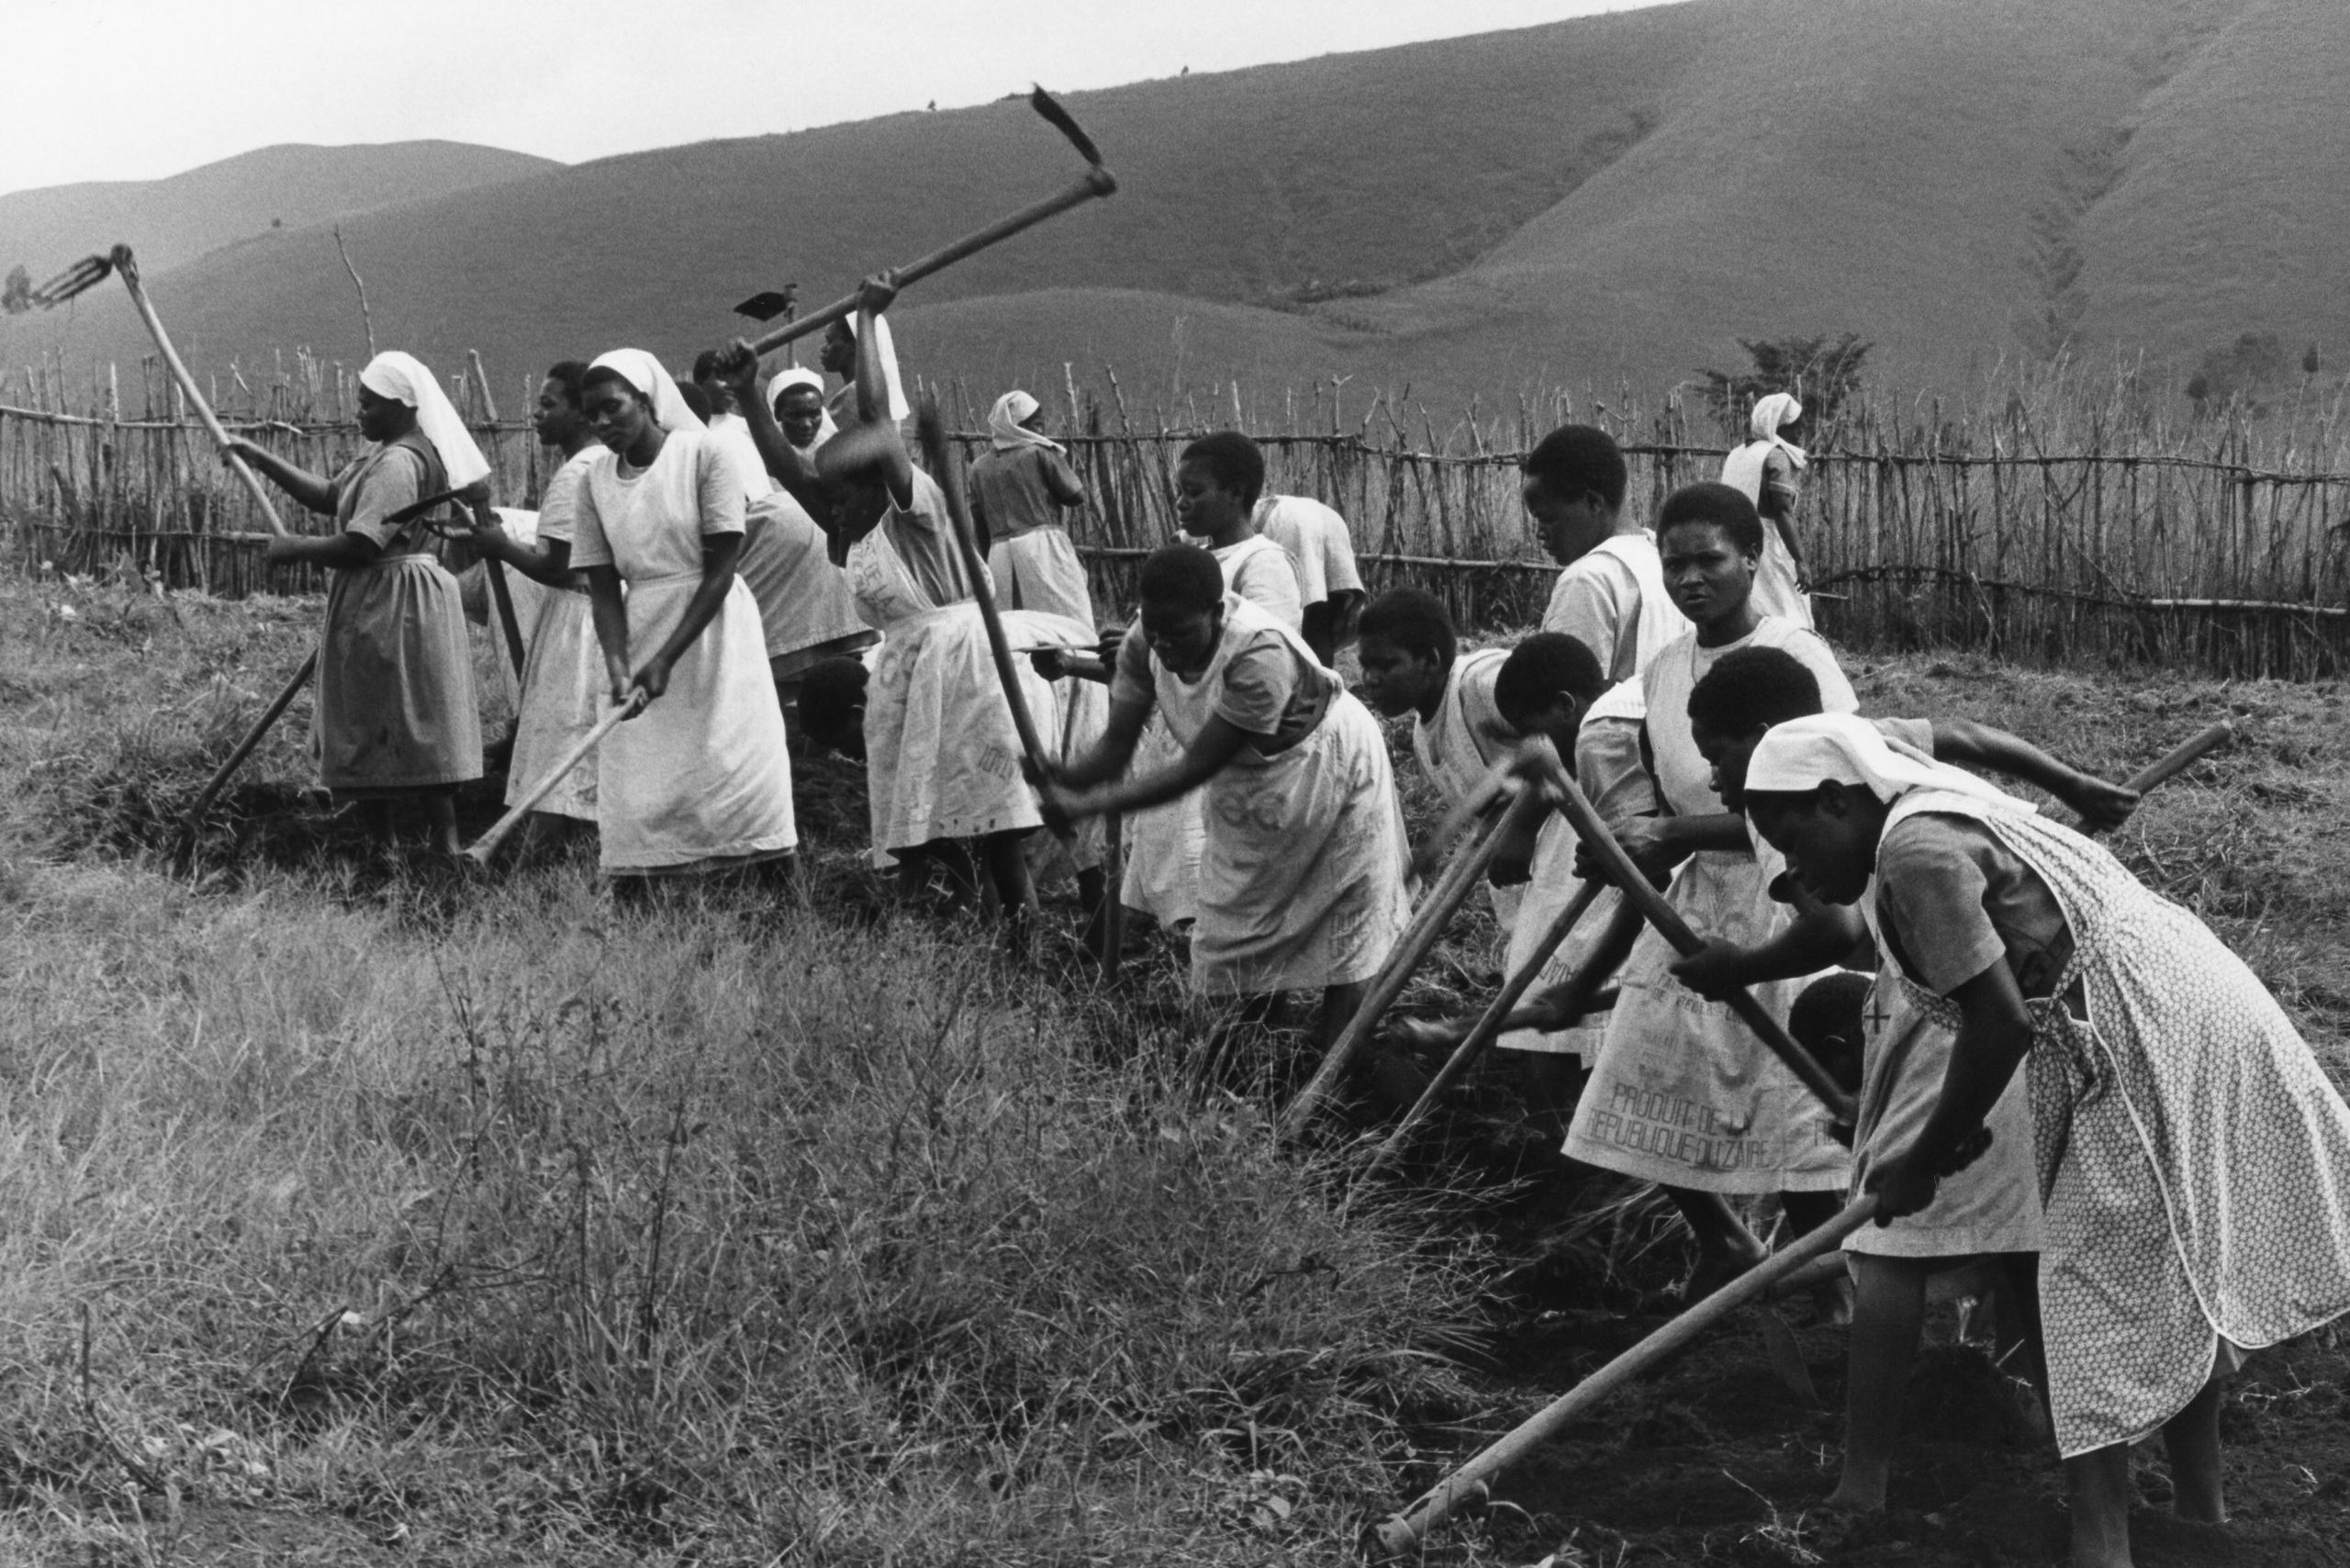 With archive image of Sisters and novices from the Daughters of the Resurrection working in the fields (Image © ACN/Karl Gähwyler)